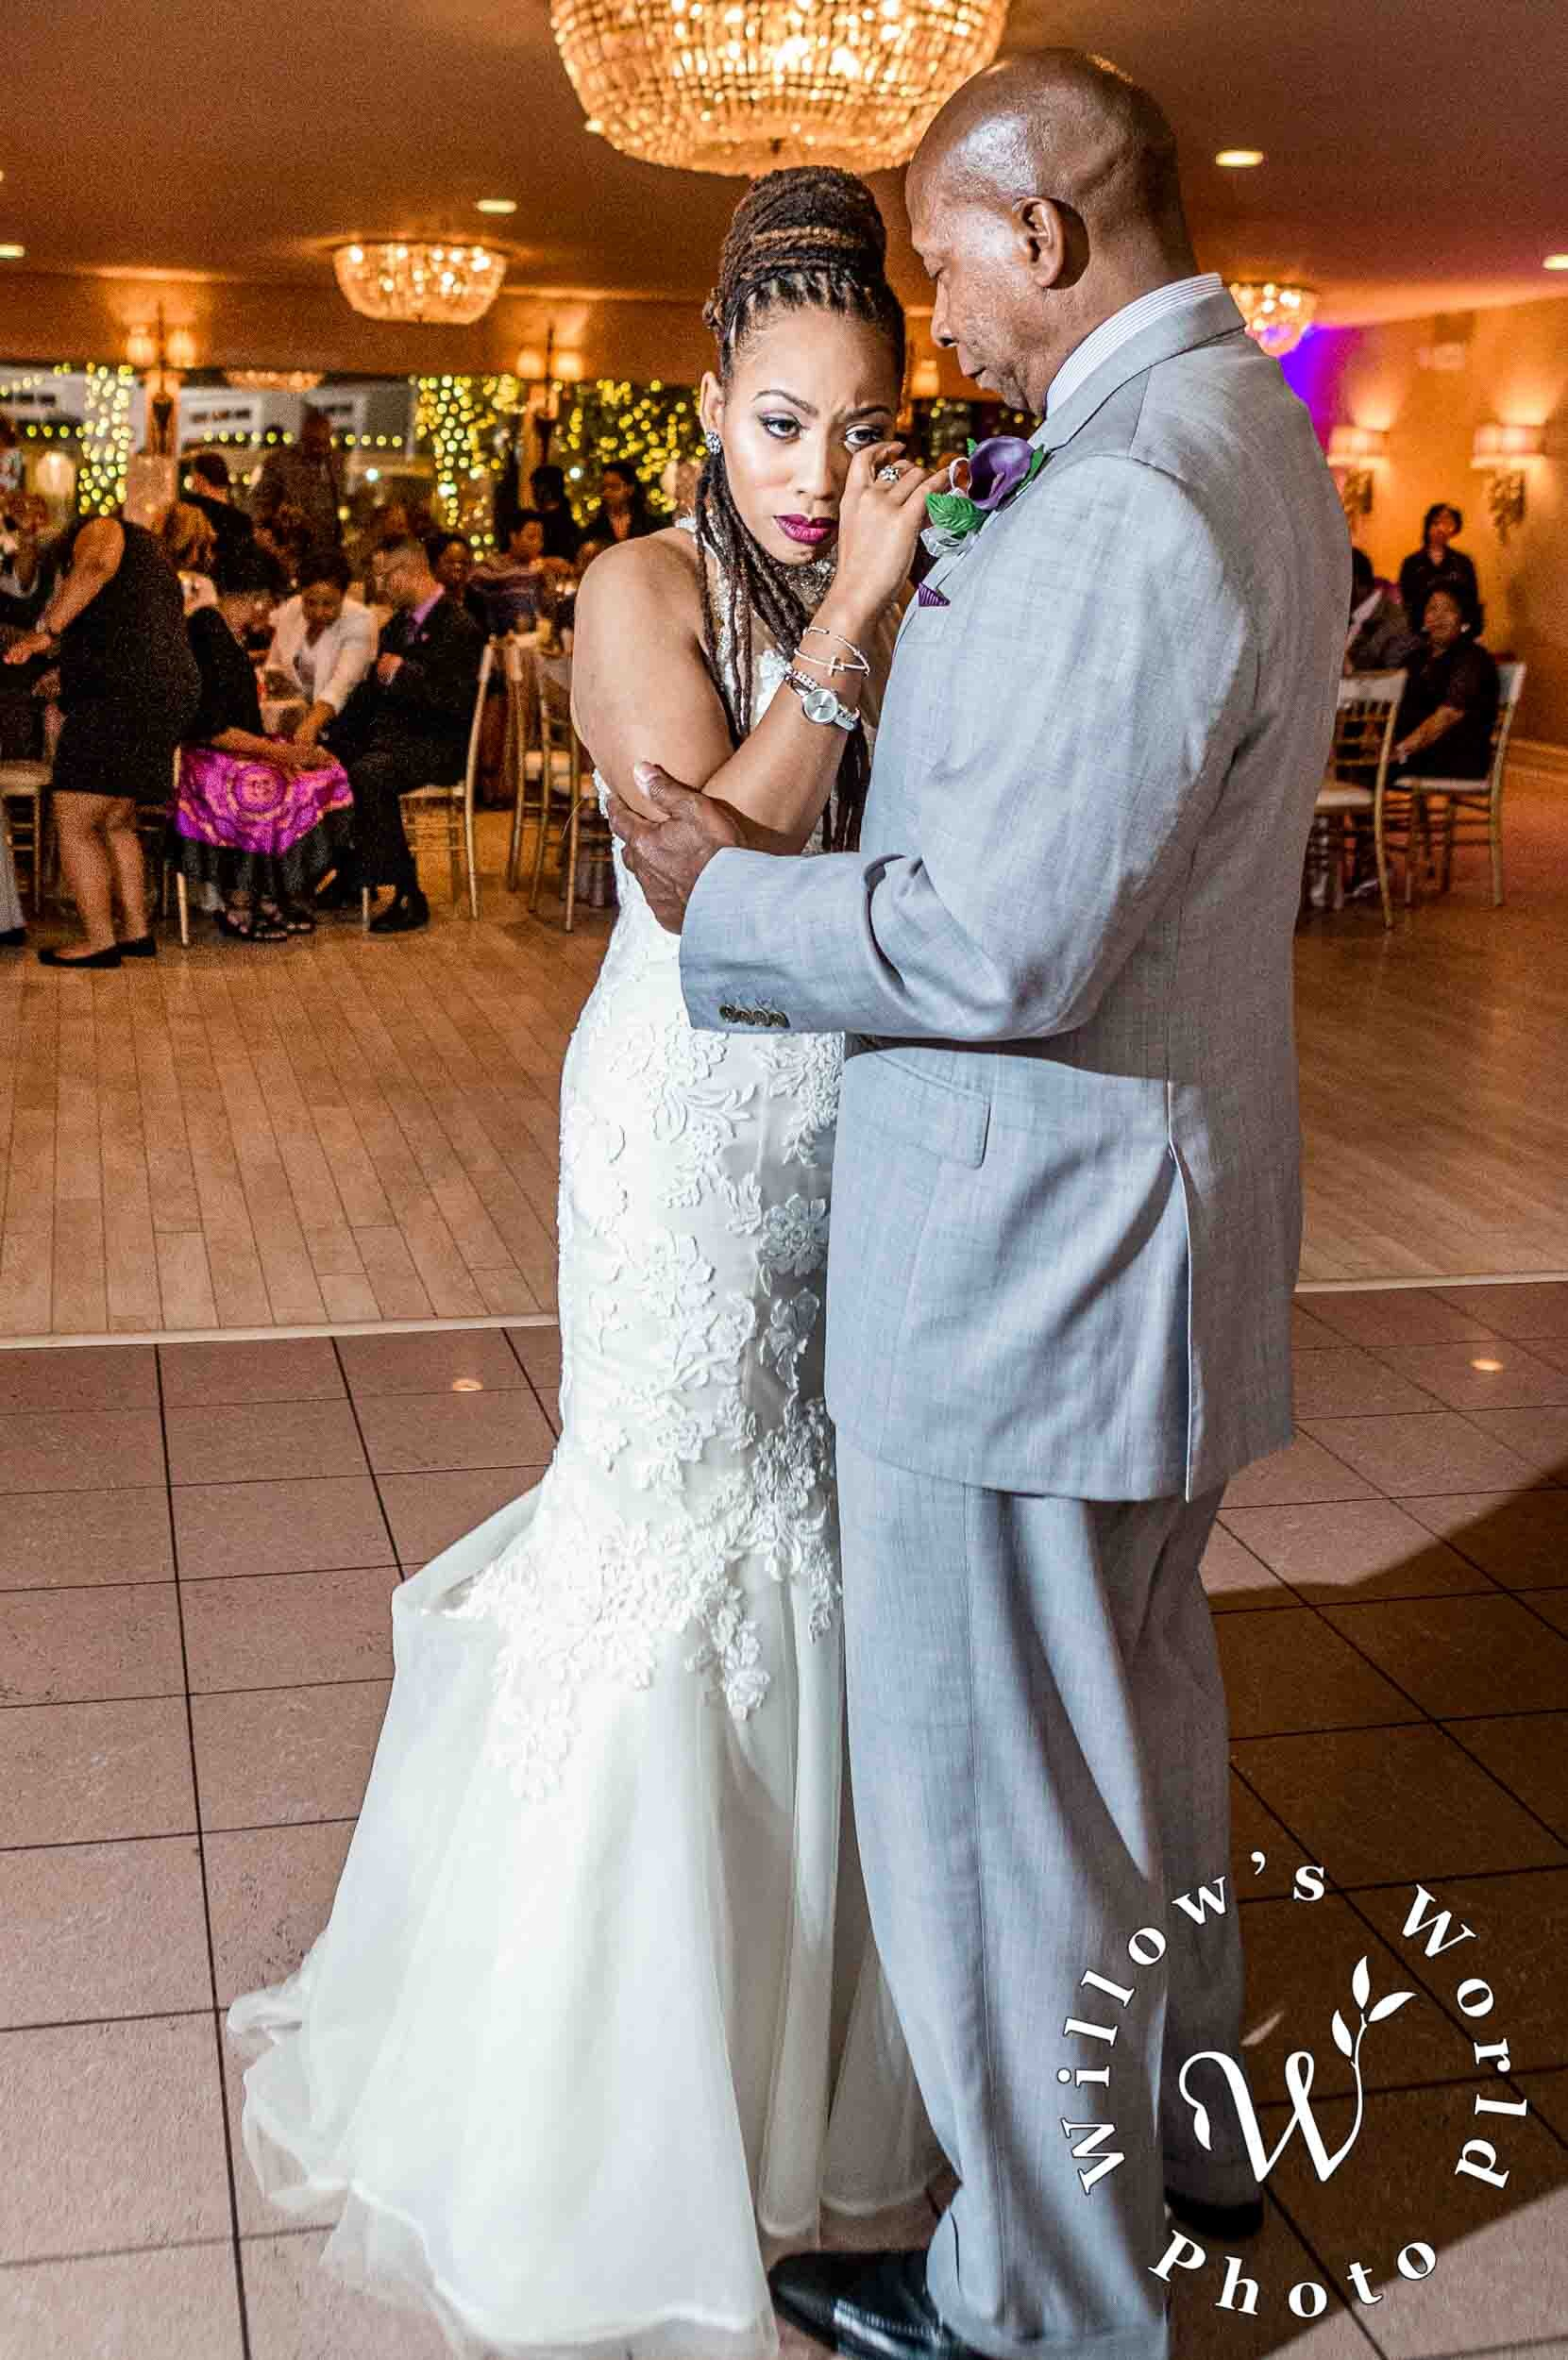 38-Southern-Oaks-Plantation-New-Orleans-Wedding-Reception-Photo-Willows-World-Photo.jpg